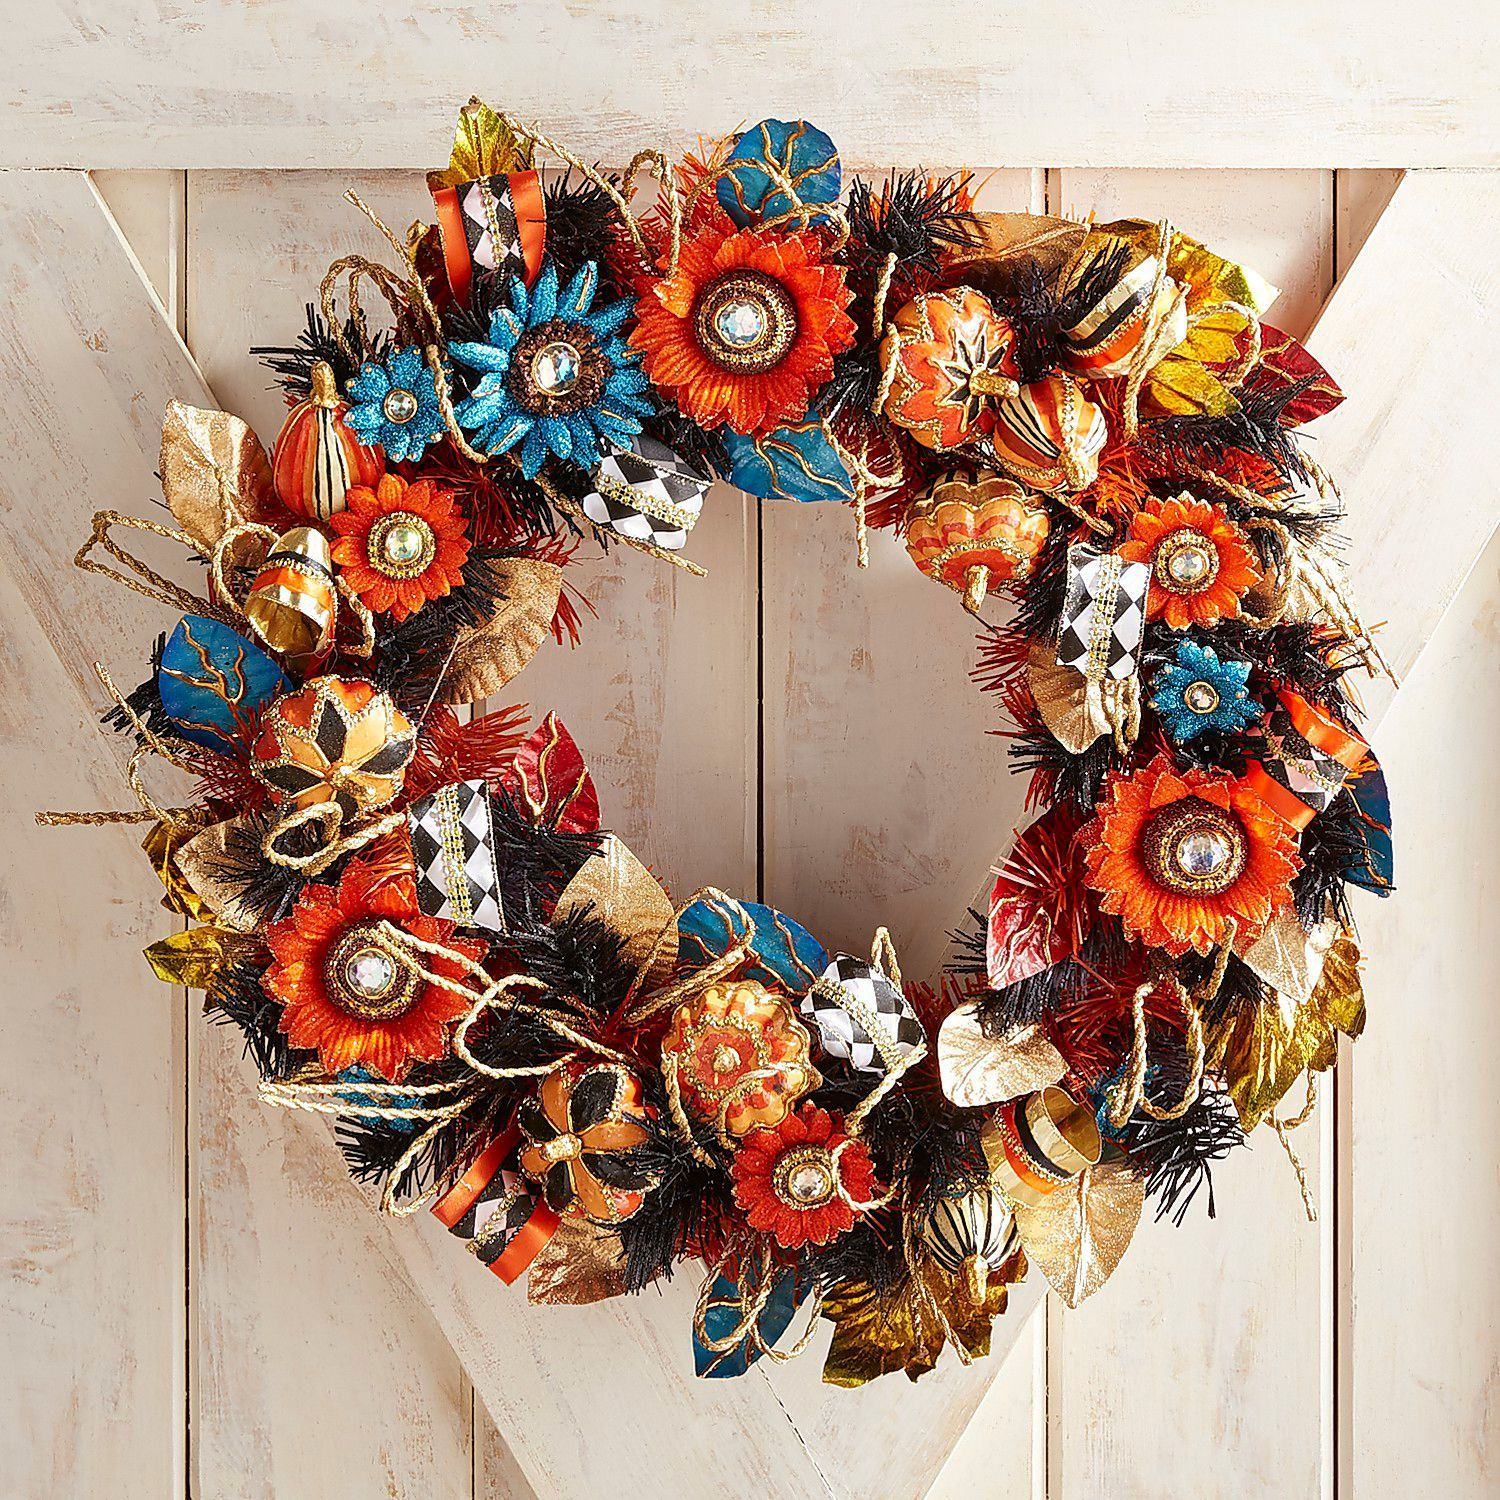 Enchanted Circus 24 Wreath - Pier 1 Imports